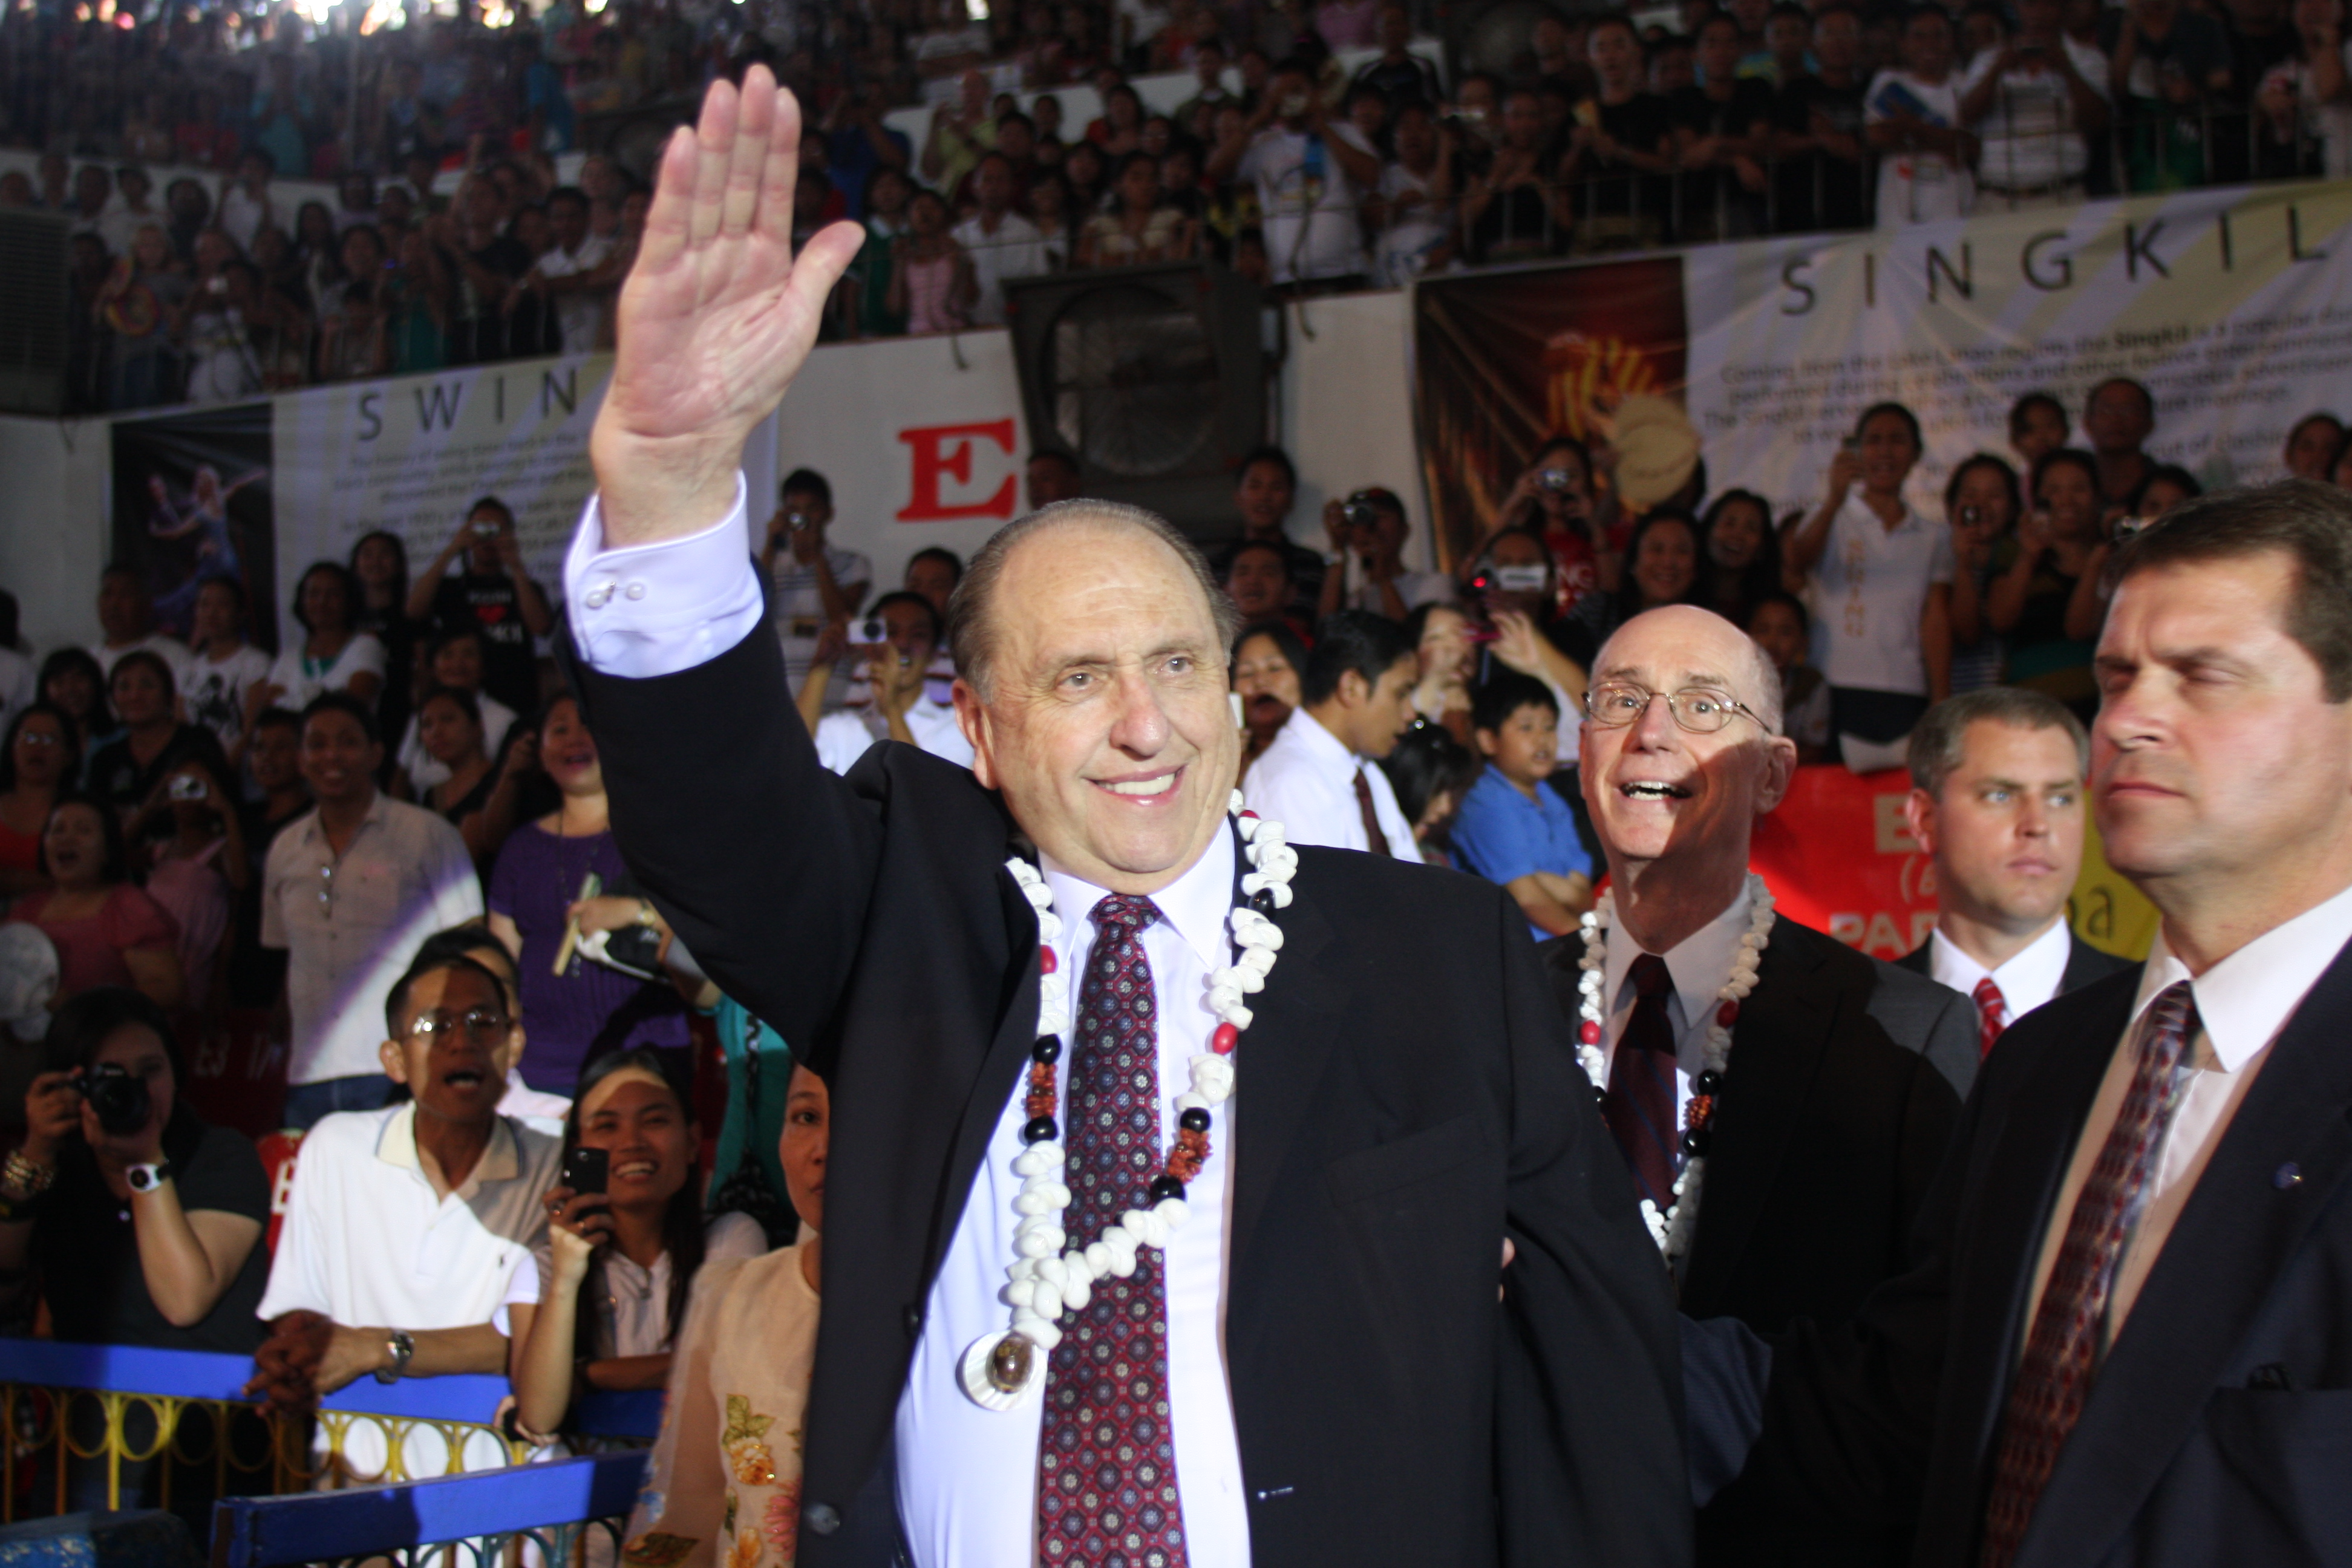 President Thomas S. Monson and President Henry B. Eyring, first counselor in the First Presidency, arrive at the cultural celebration held June 12, 2010, the evening before the dedication of the Cebu City Philippines Temple.